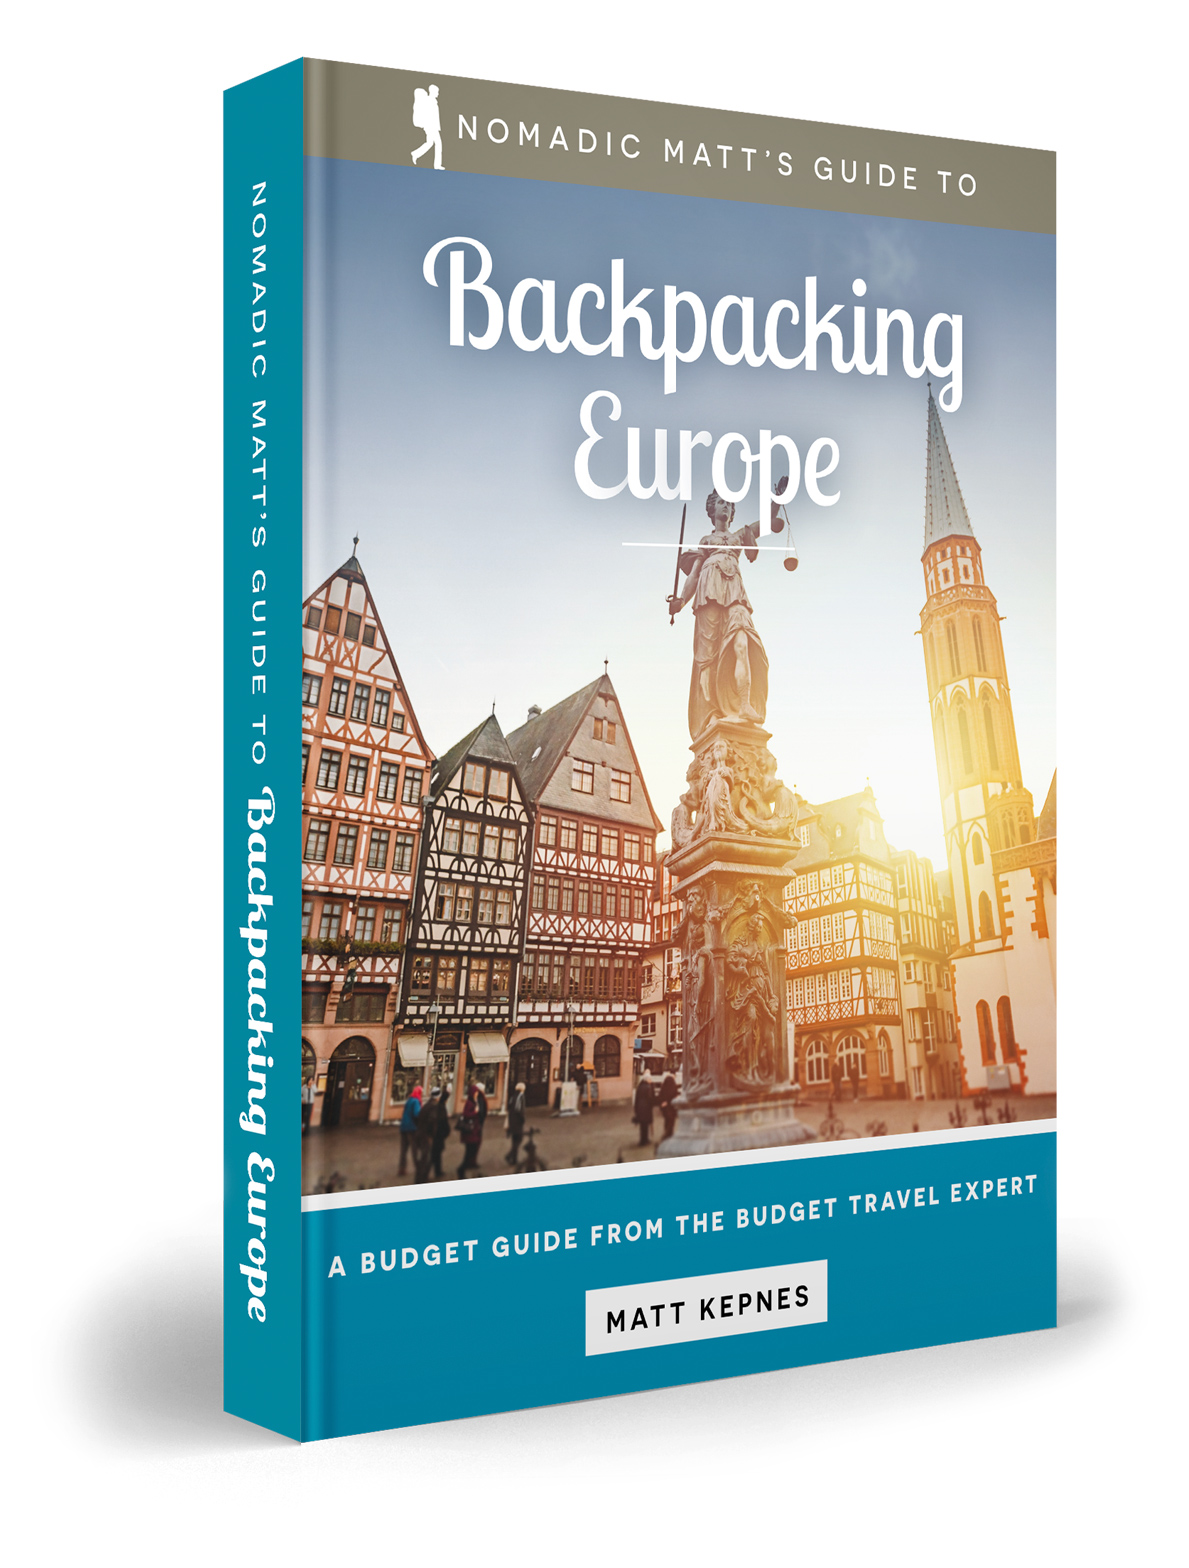 nomadic matt's guide to Europe